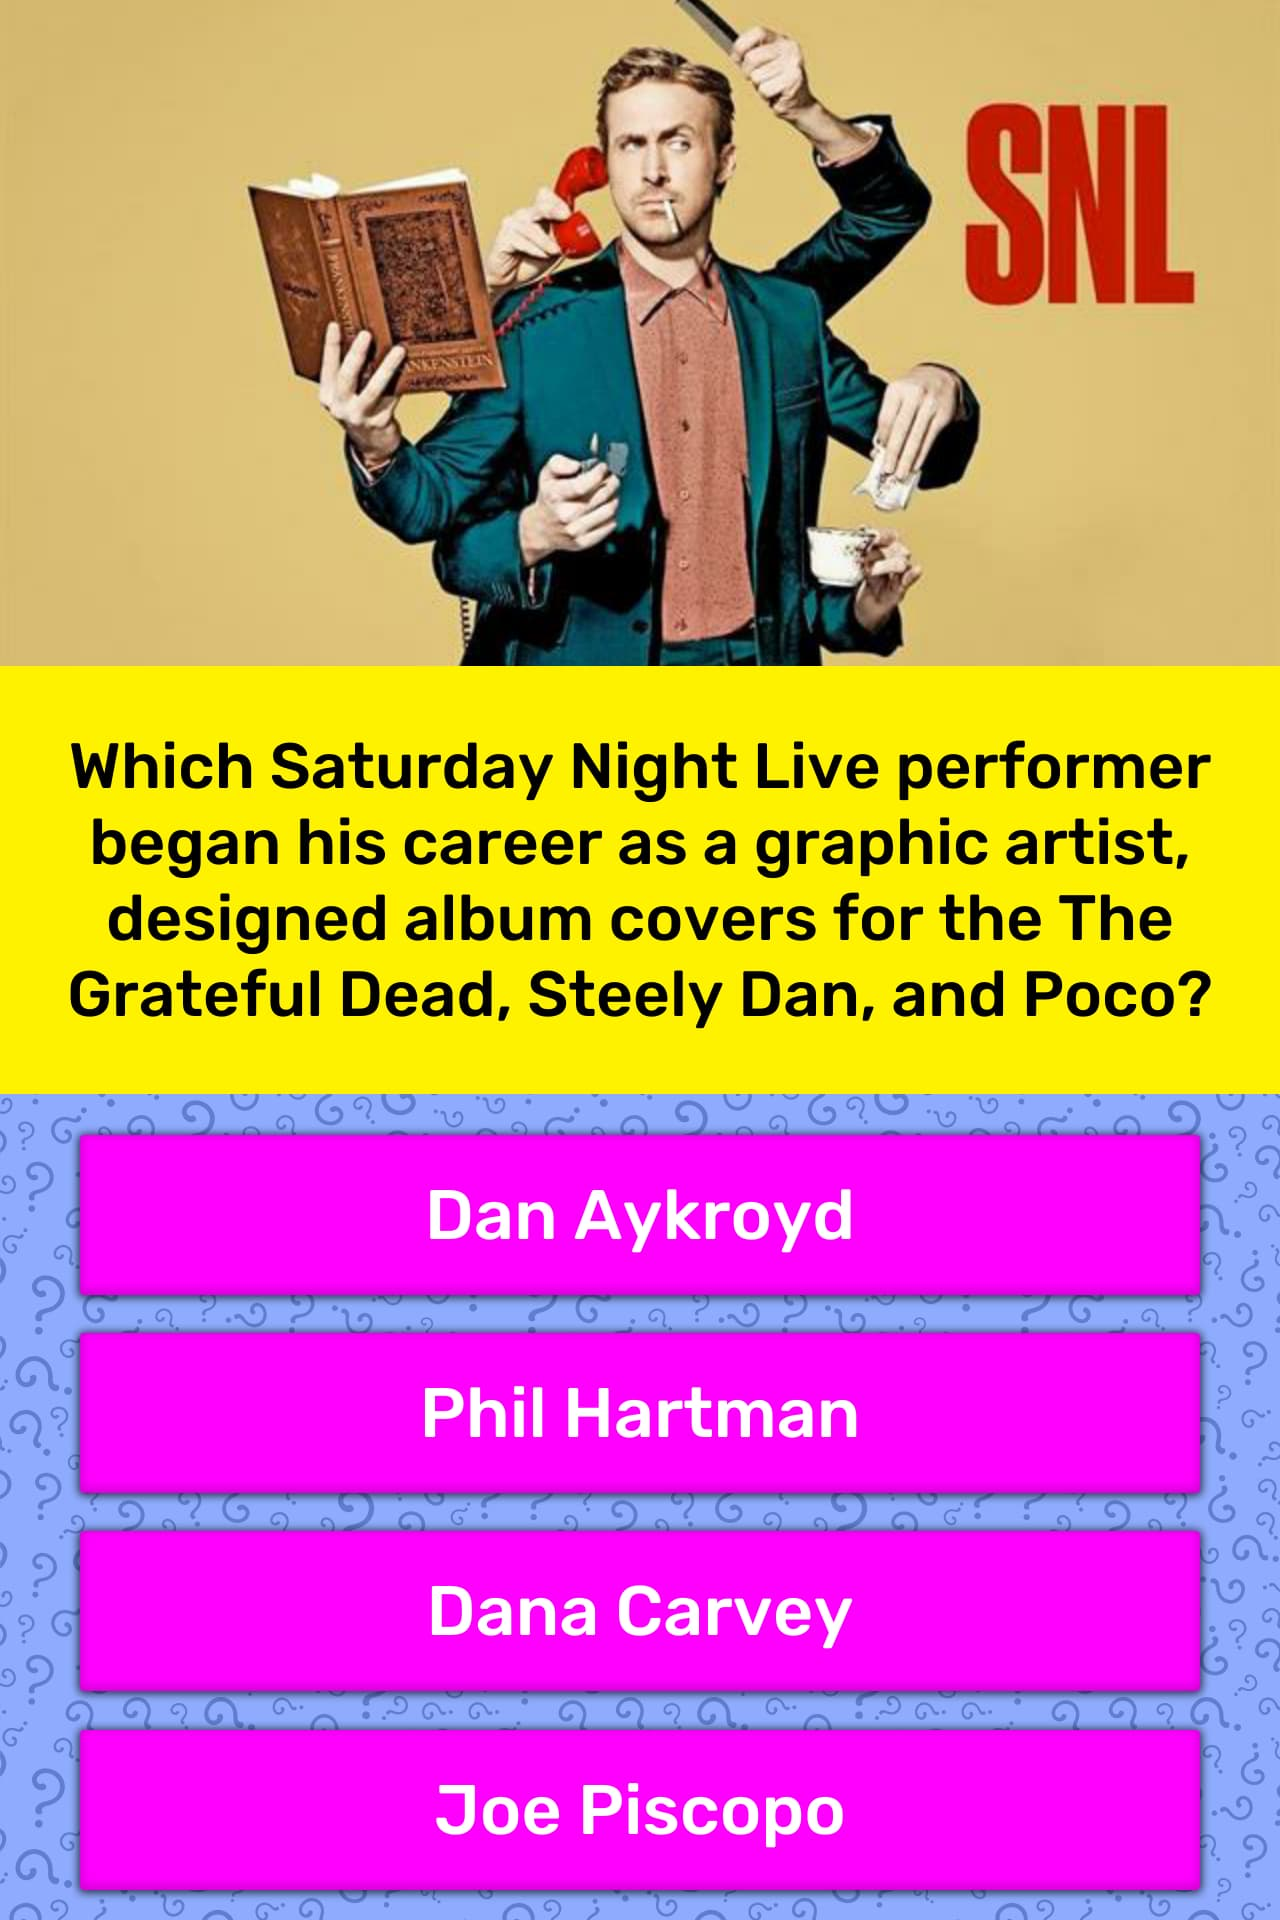 Which Saturday Night Live performer    | Trivia Answers | QuizzClub